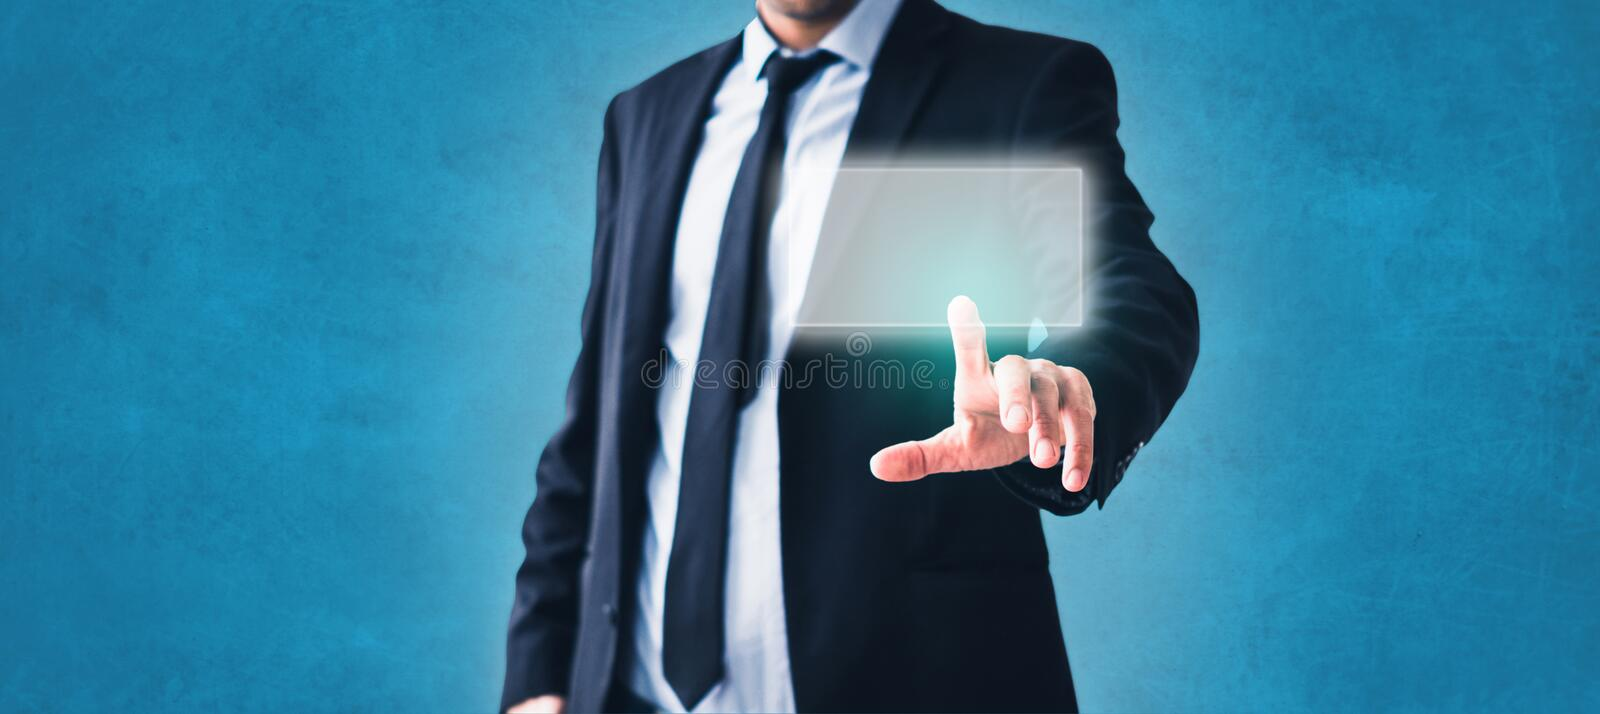 Man touch virtual screen -  technology in business stock images